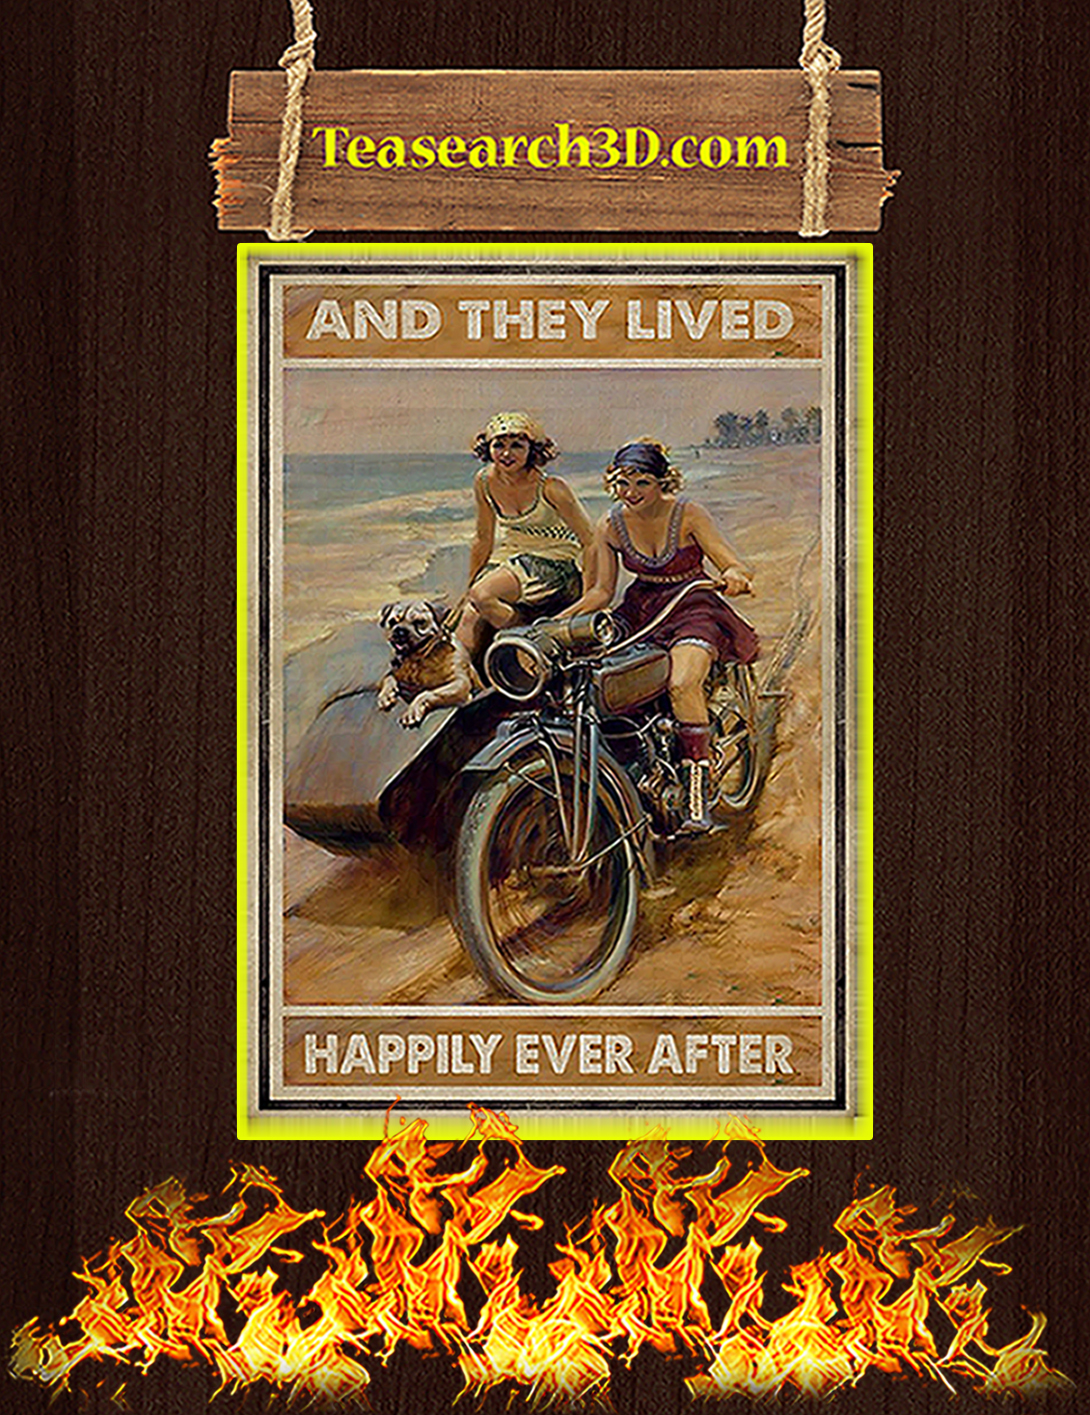 Biker And they lived happily ever after poster A2